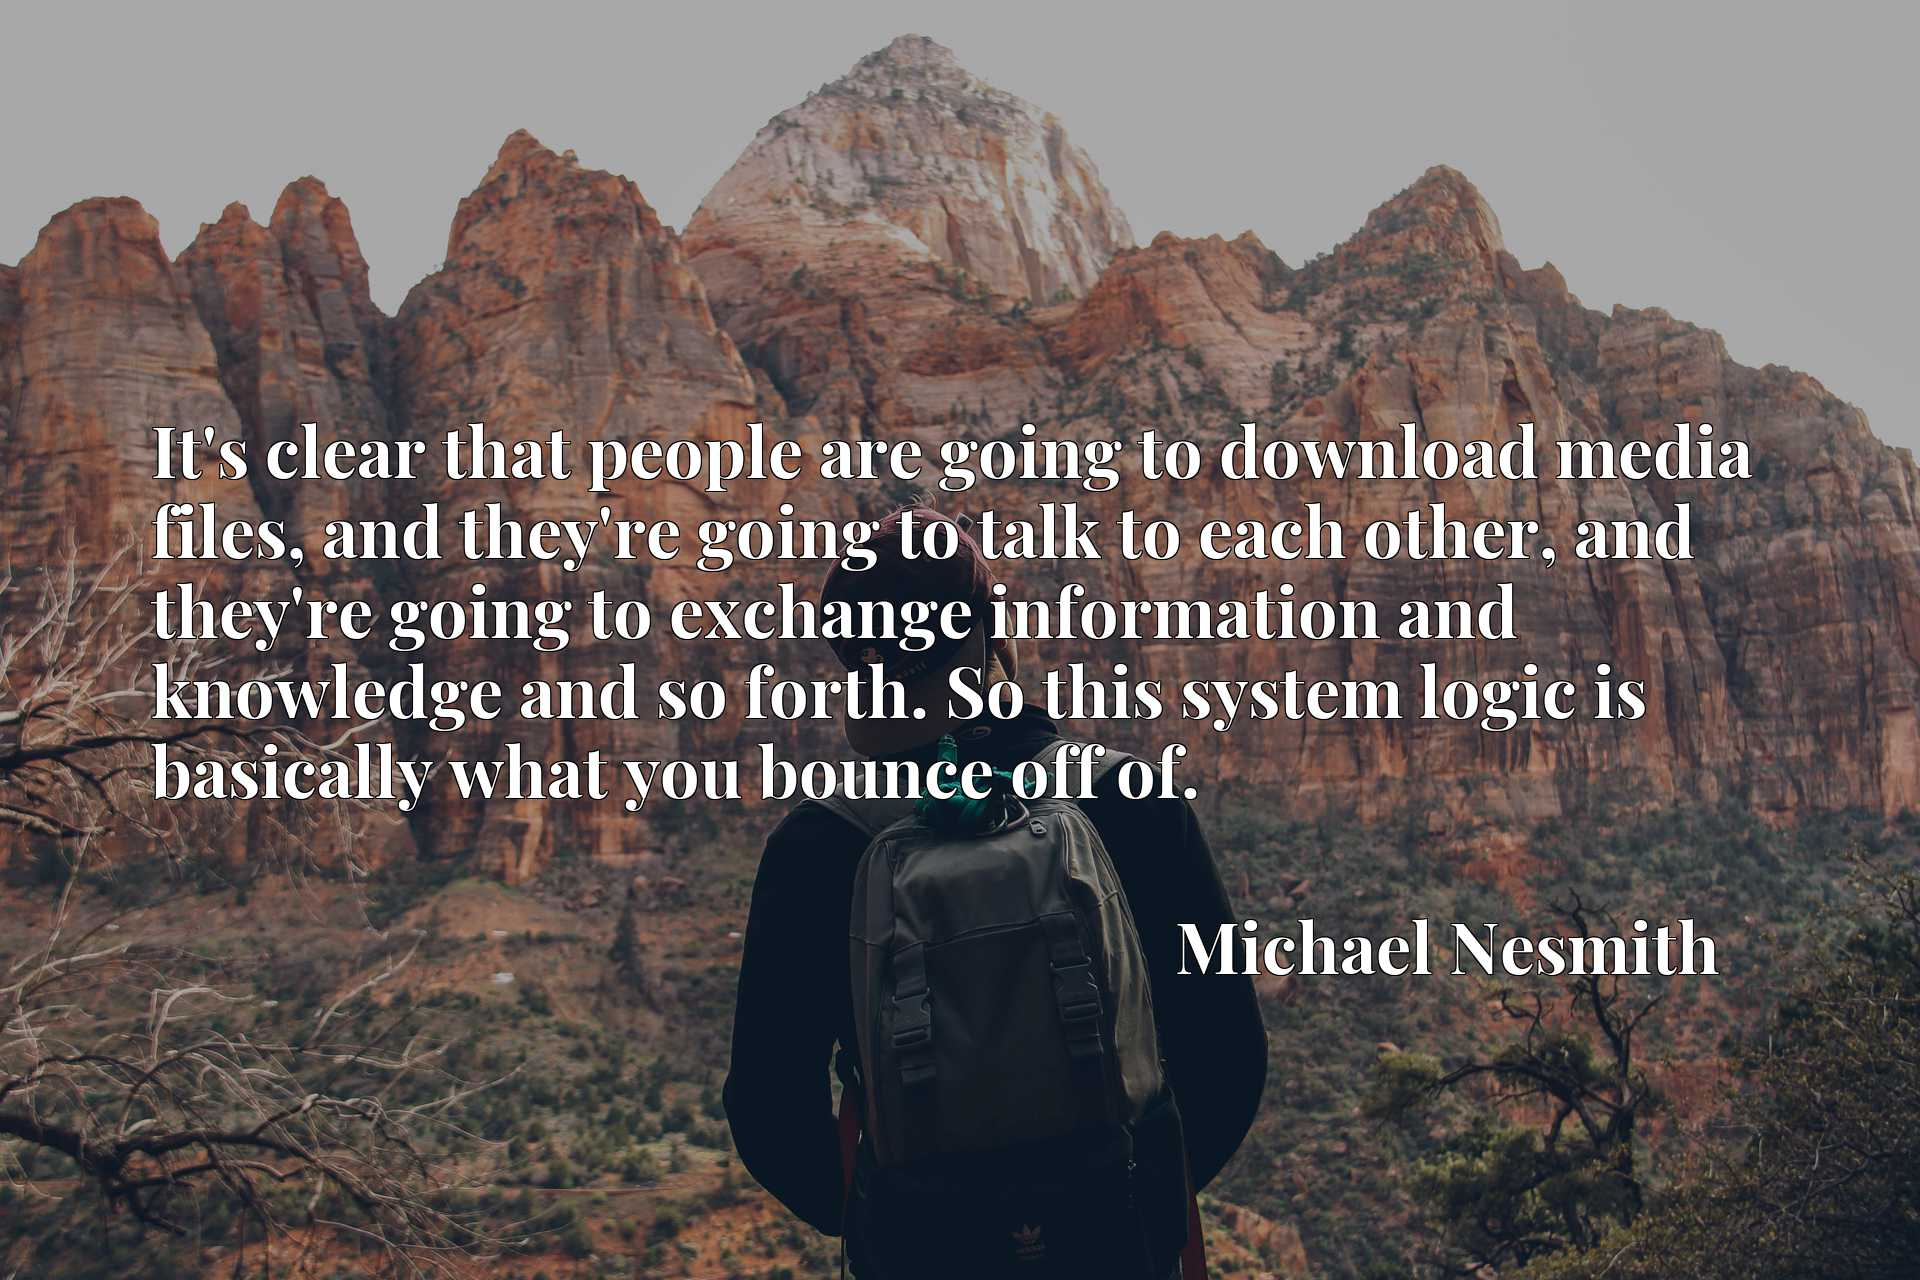 Quote Picture :It's clear that people are going to download media files, and they're going to talk to each other, and they're going to exchange information and knowledge and so forth. So this system logic is basically what you bounce off of.